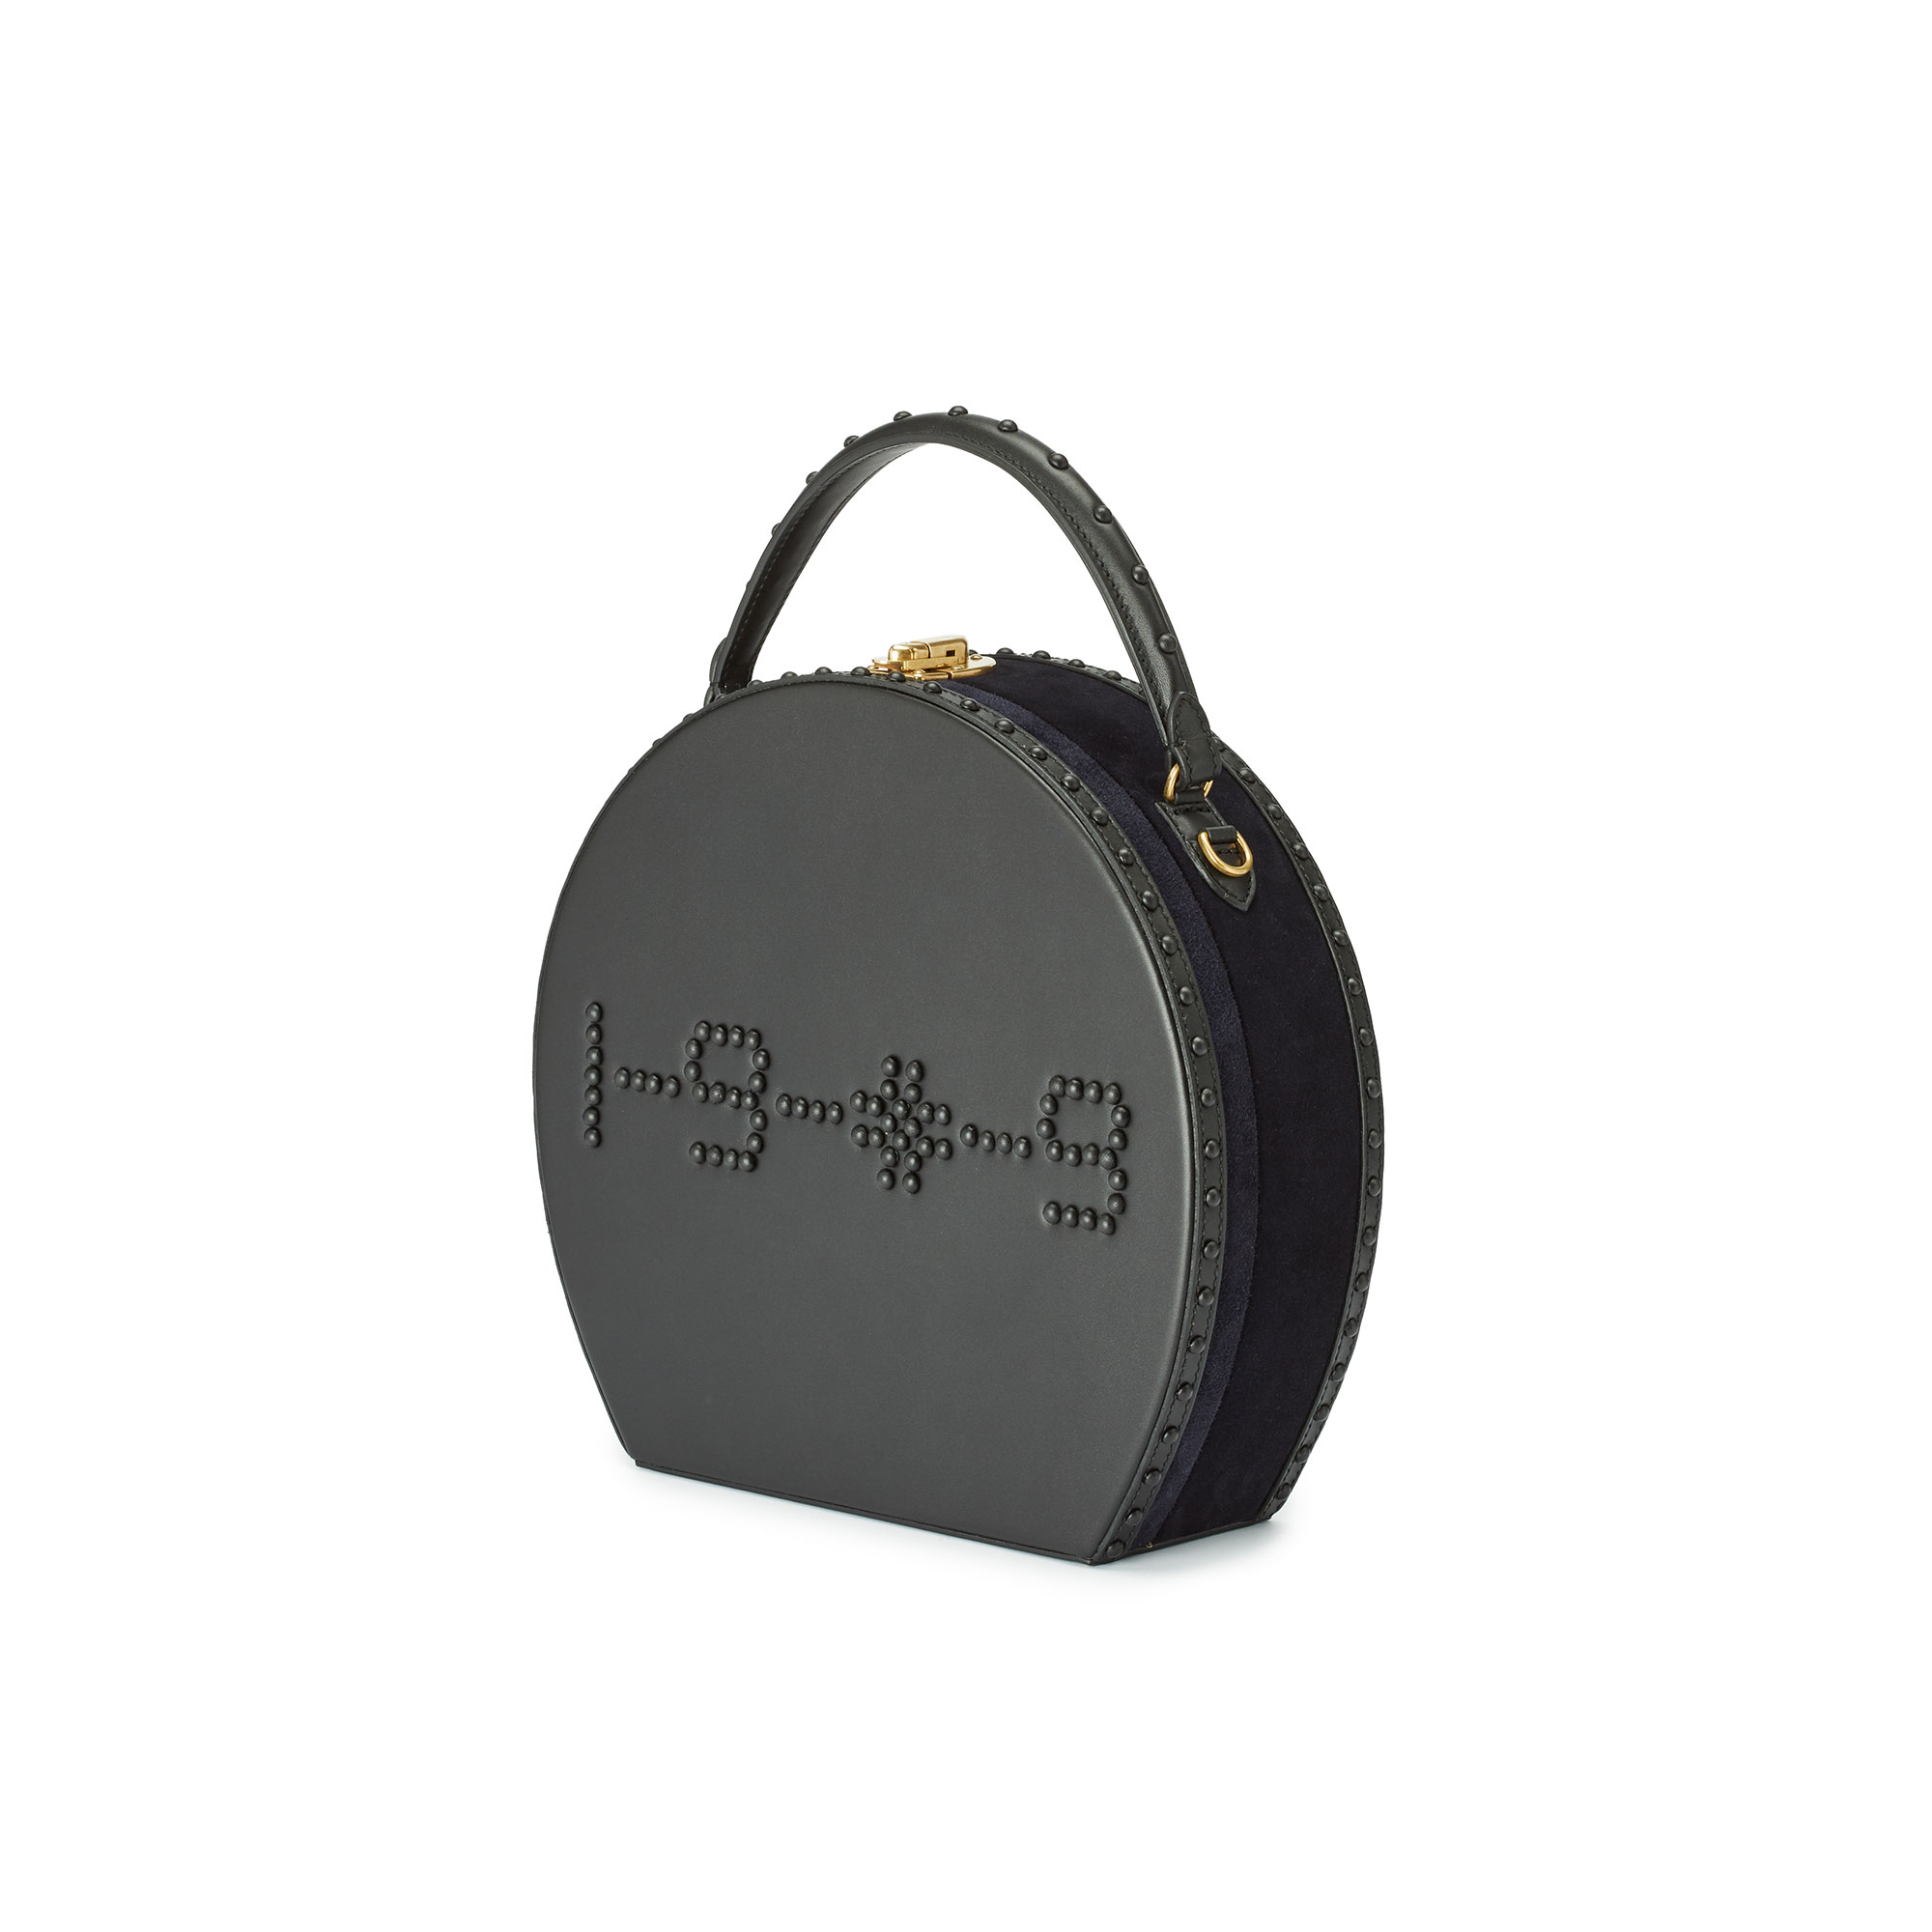 Large-Bertoncina-black-french-calf-bag-Bertoni-1949_03